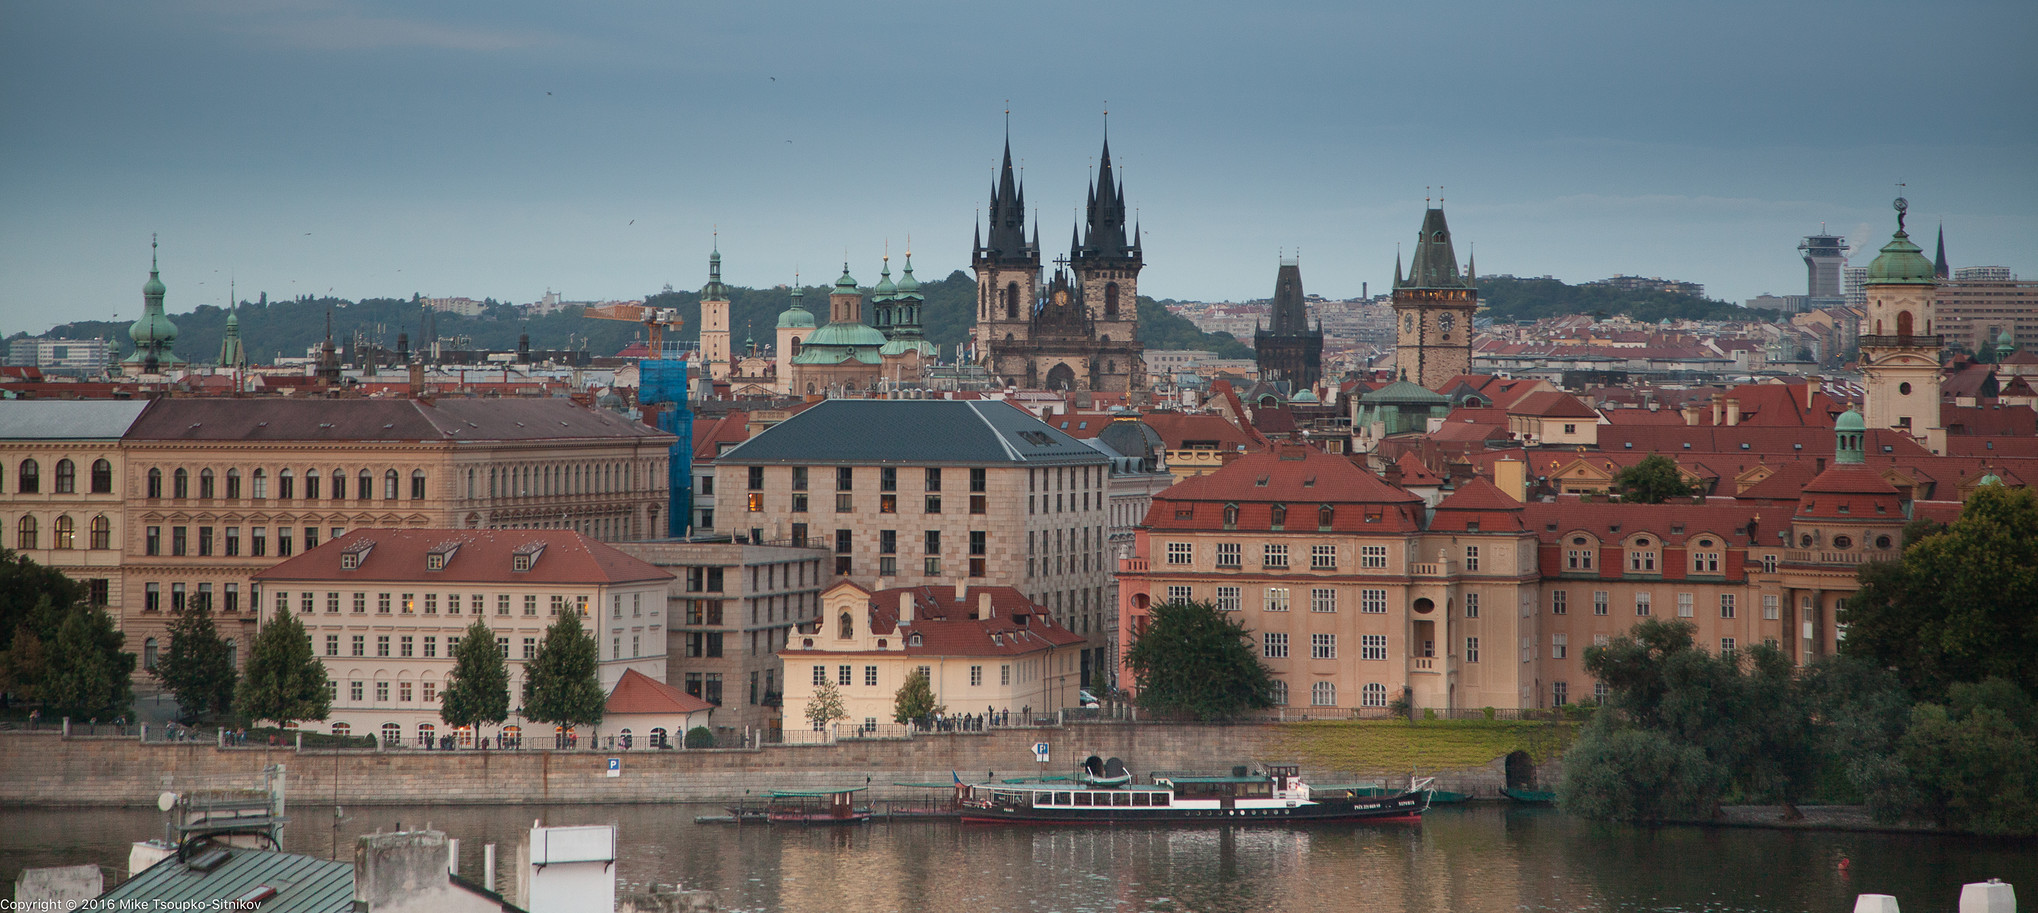 Prague. The view of the Old Town from the West tower of Charles Bridge